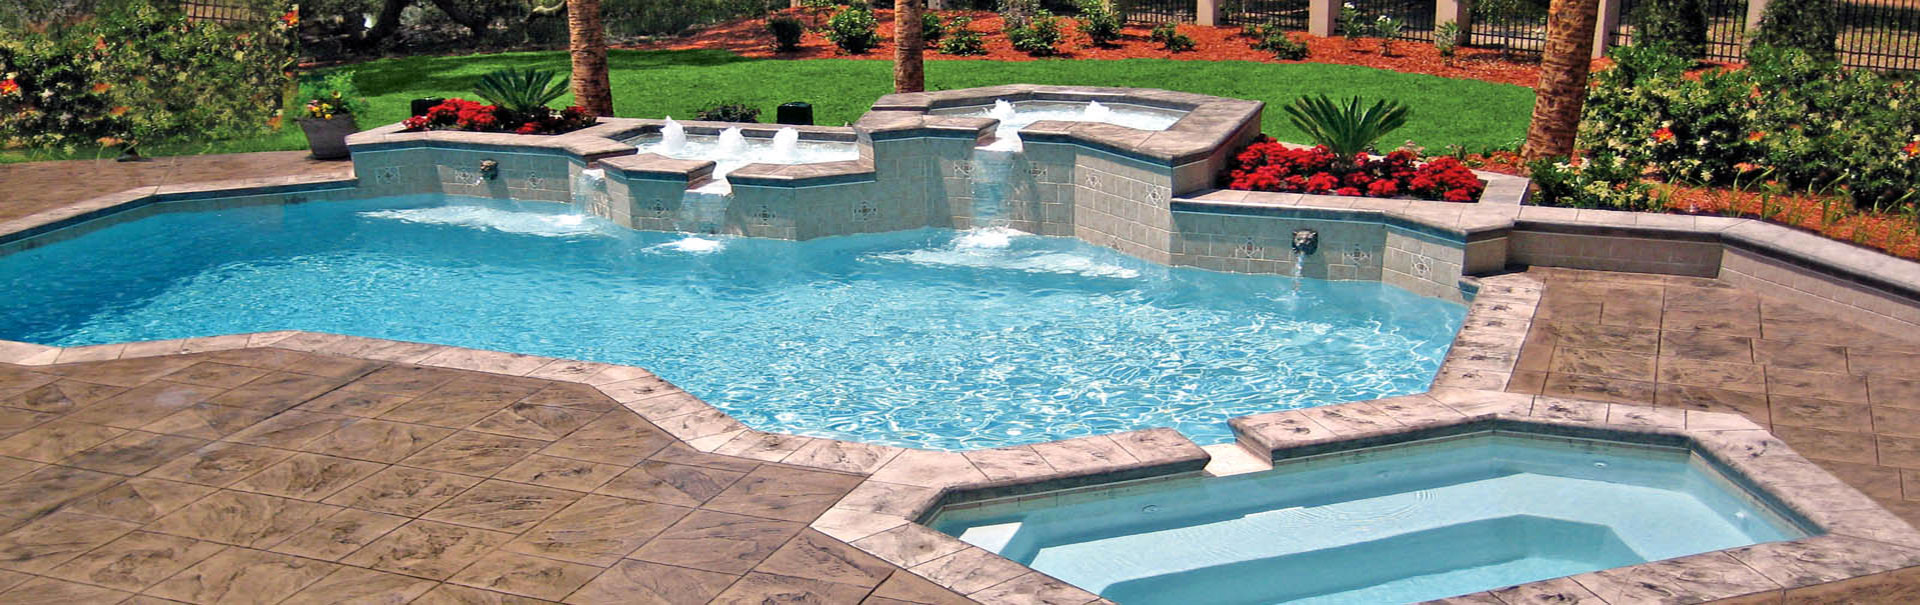 Myrtle Beach Custom Swimming Pool Builders│blue Haven Pools